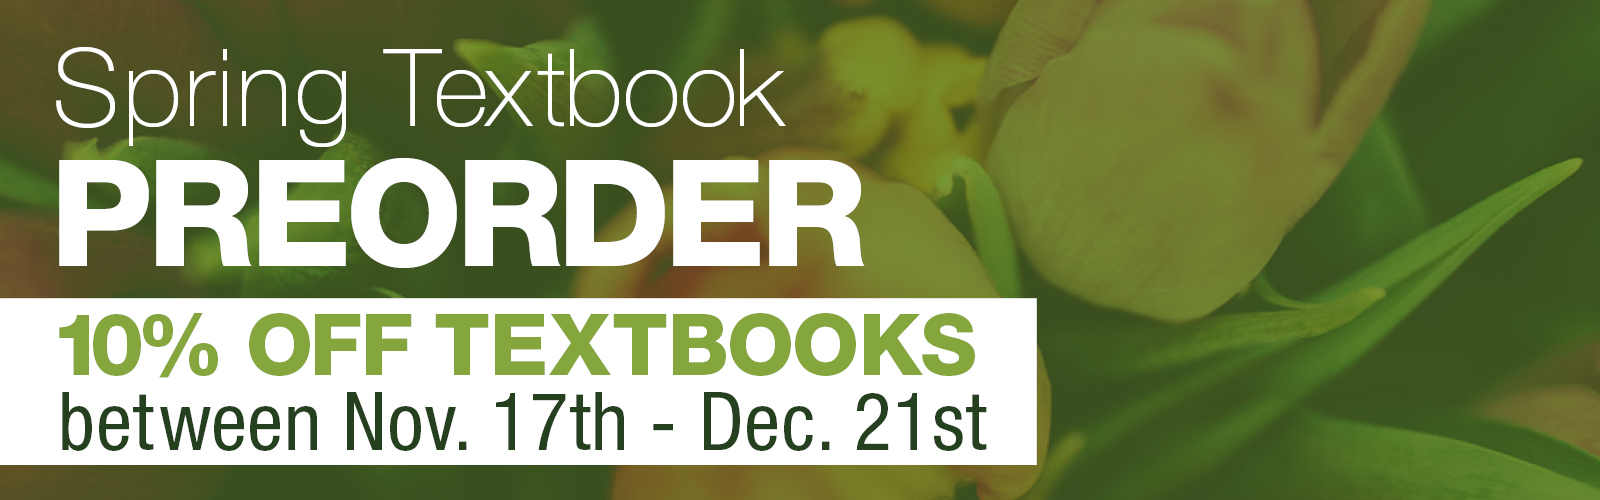 Spring Textbook Preorder: 10% off Textbooks between Nov. 17th and Dec. 21st